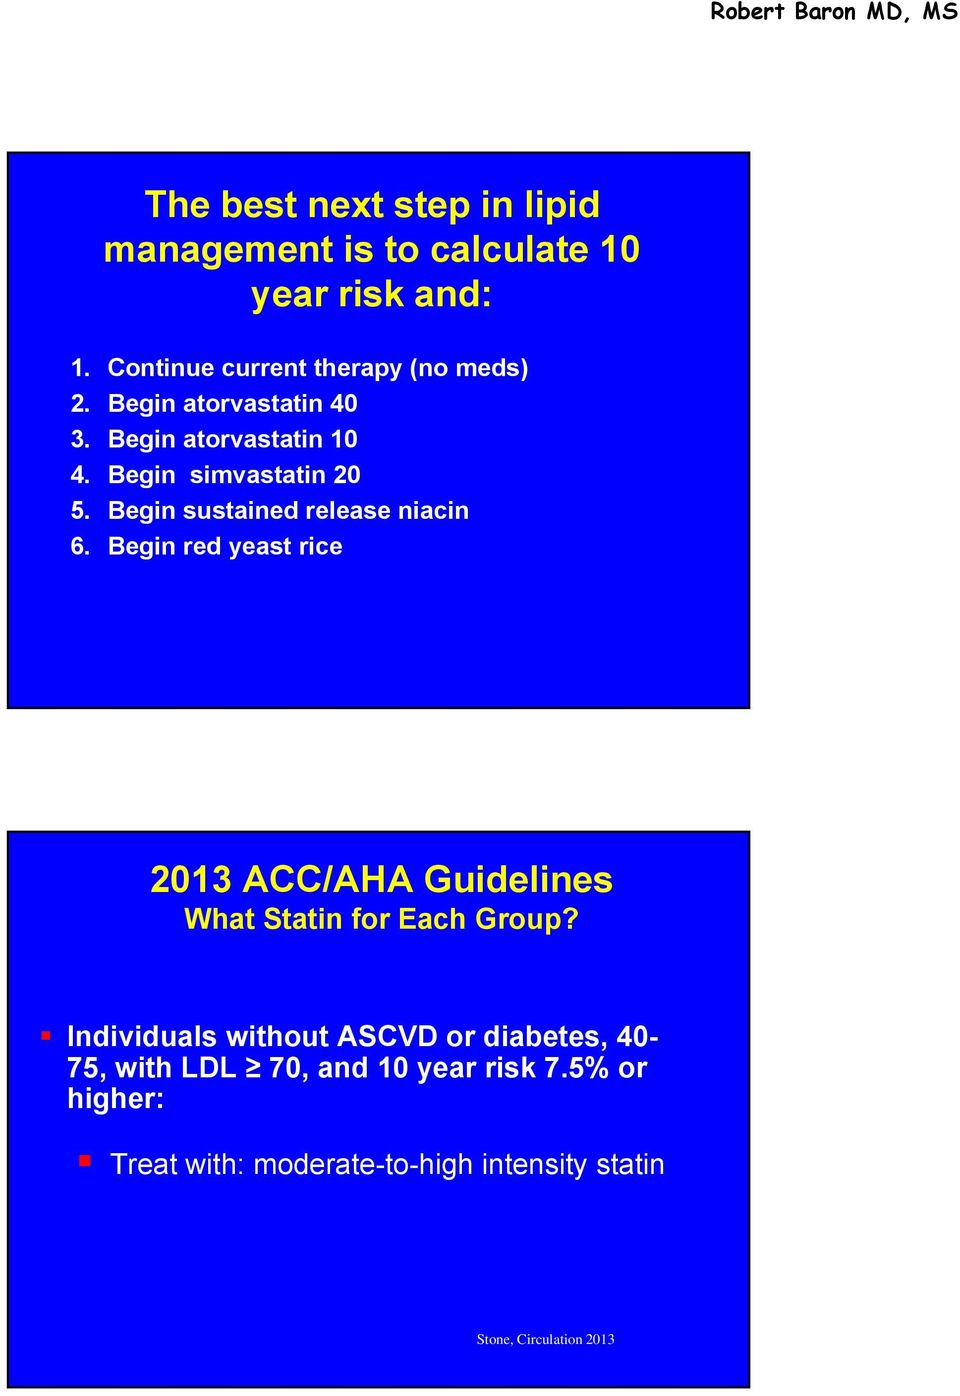 Begin red yeast rice 2013 ACC/AHA Guidelines What Statin for Each Group?